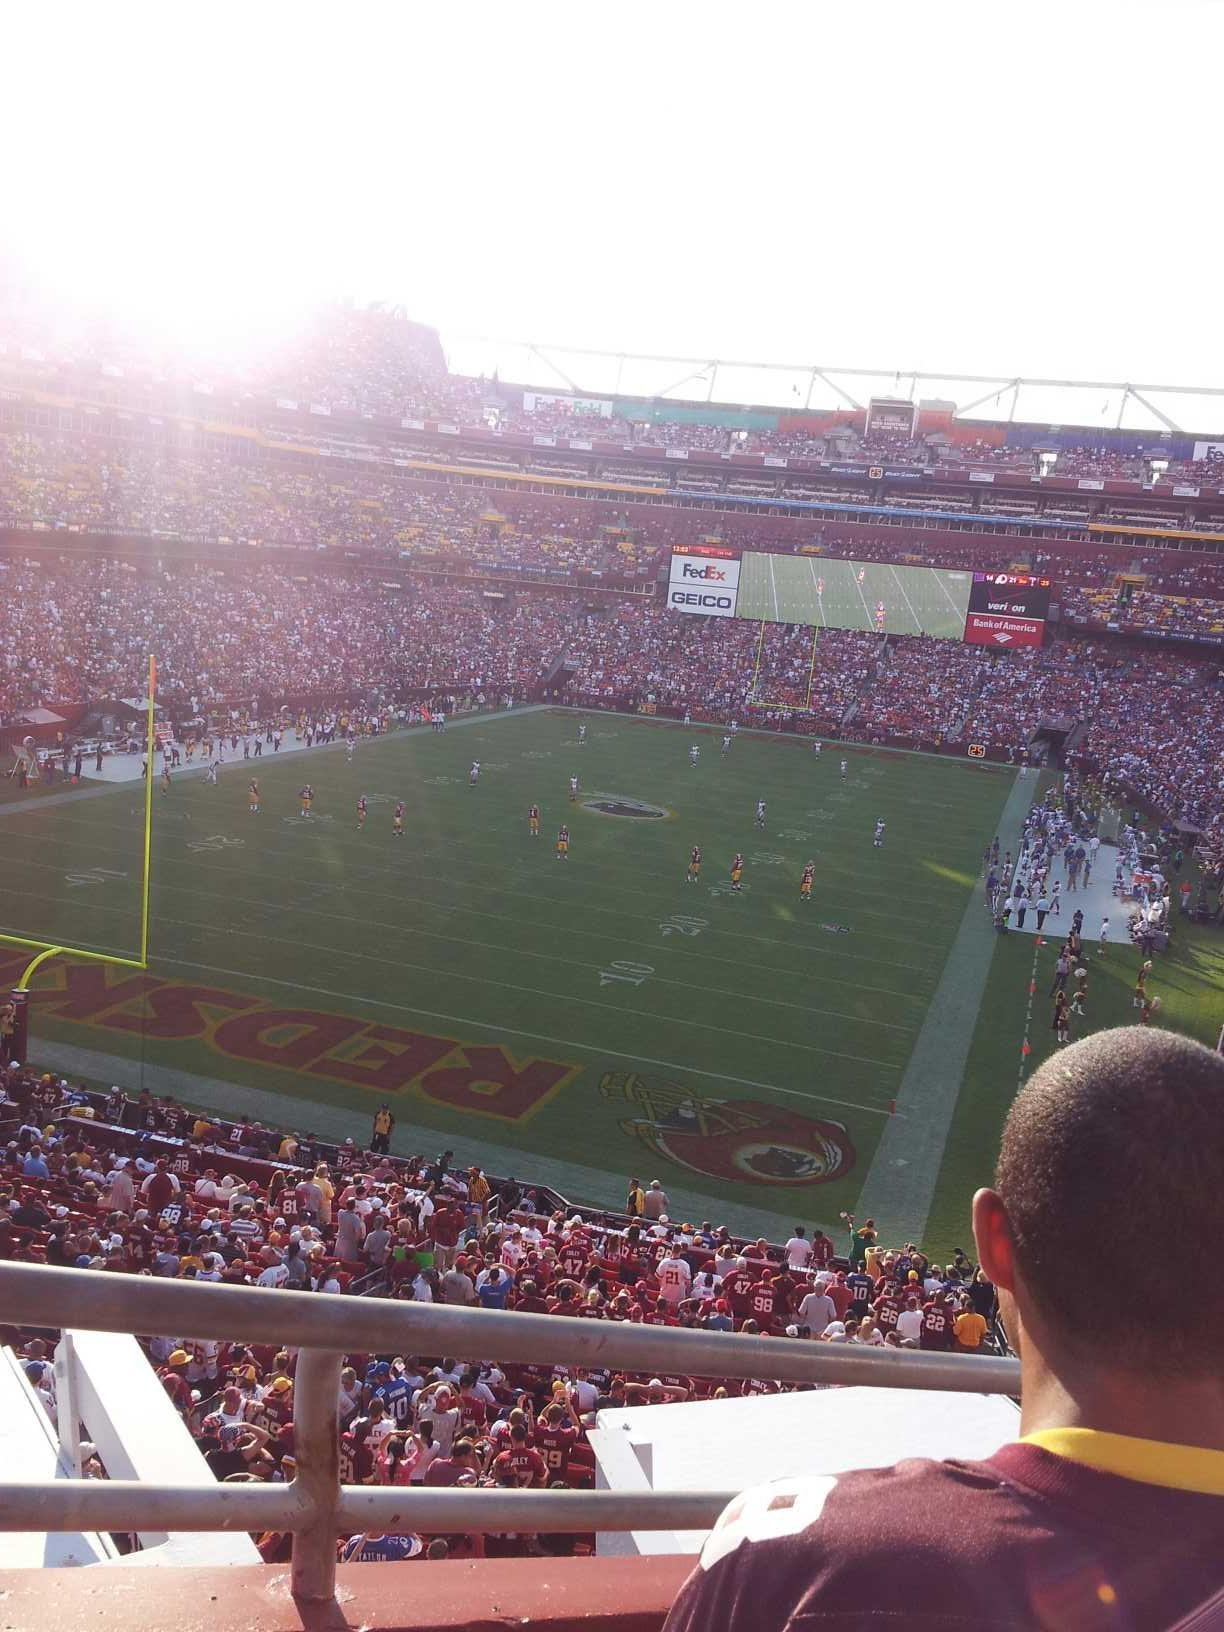 FedEx Field Section 330 Row 5 Seat 7